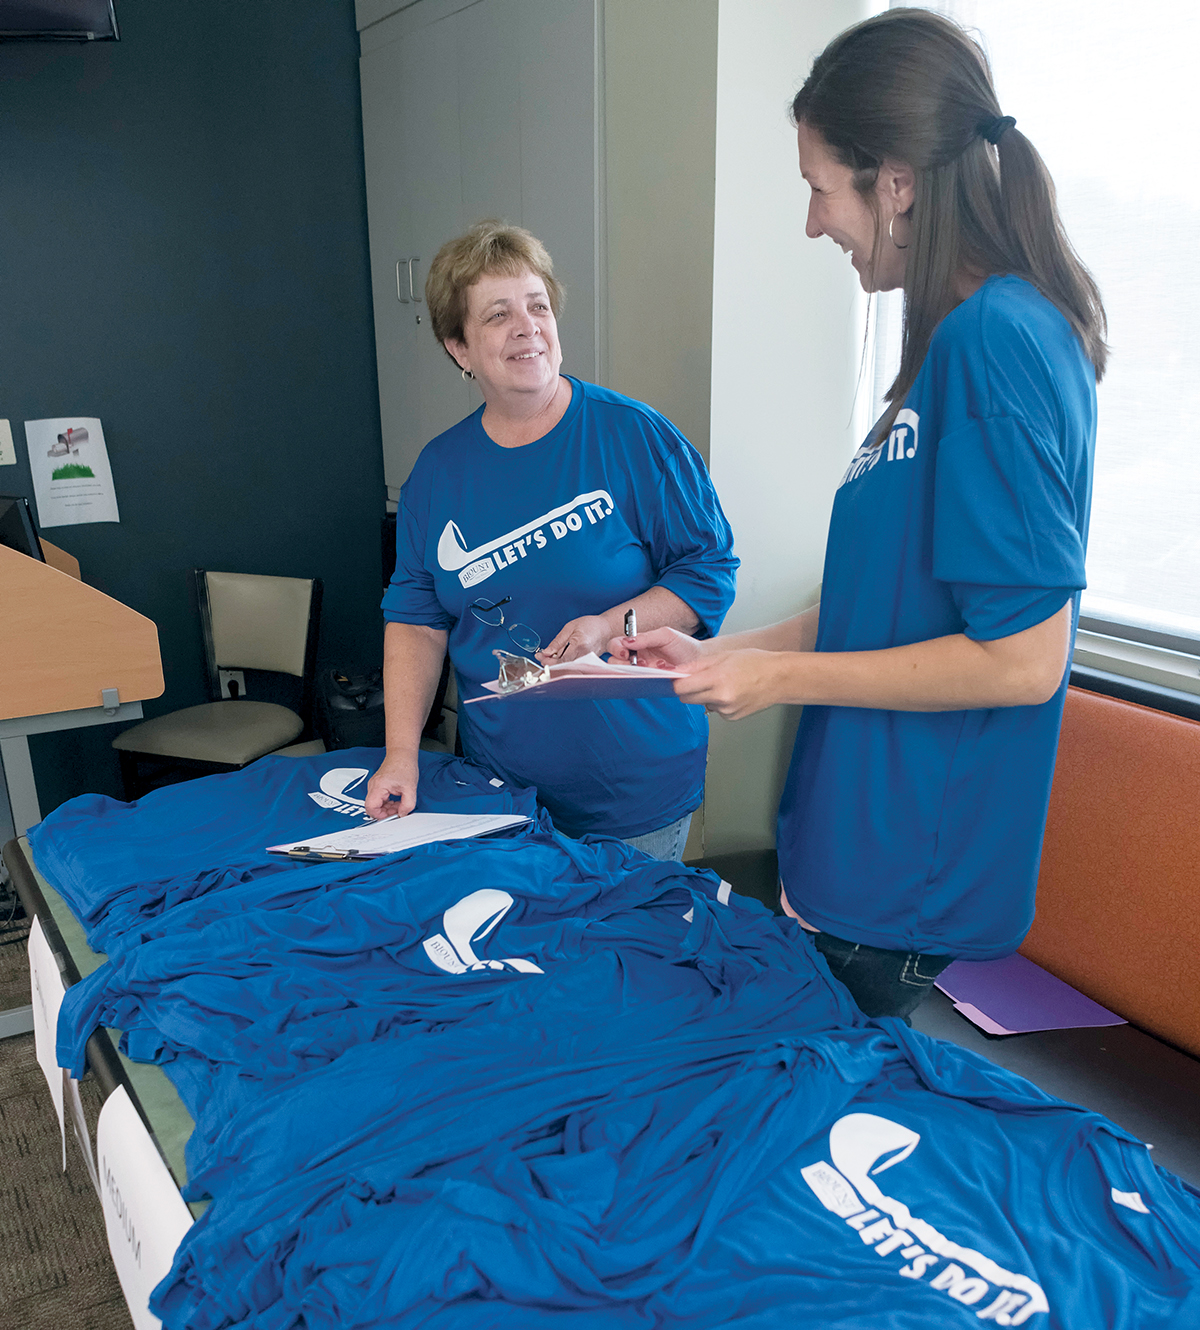 RECOGNIZING STAFF: Shelly Swallow, payroll specialist, left, and Valerie Ball, senior HR manager, hand out T-shirts to employees at Blount Fine Foods as part of its corporate recognition program. / PBN PHOTO/MICHAEL SALERNO